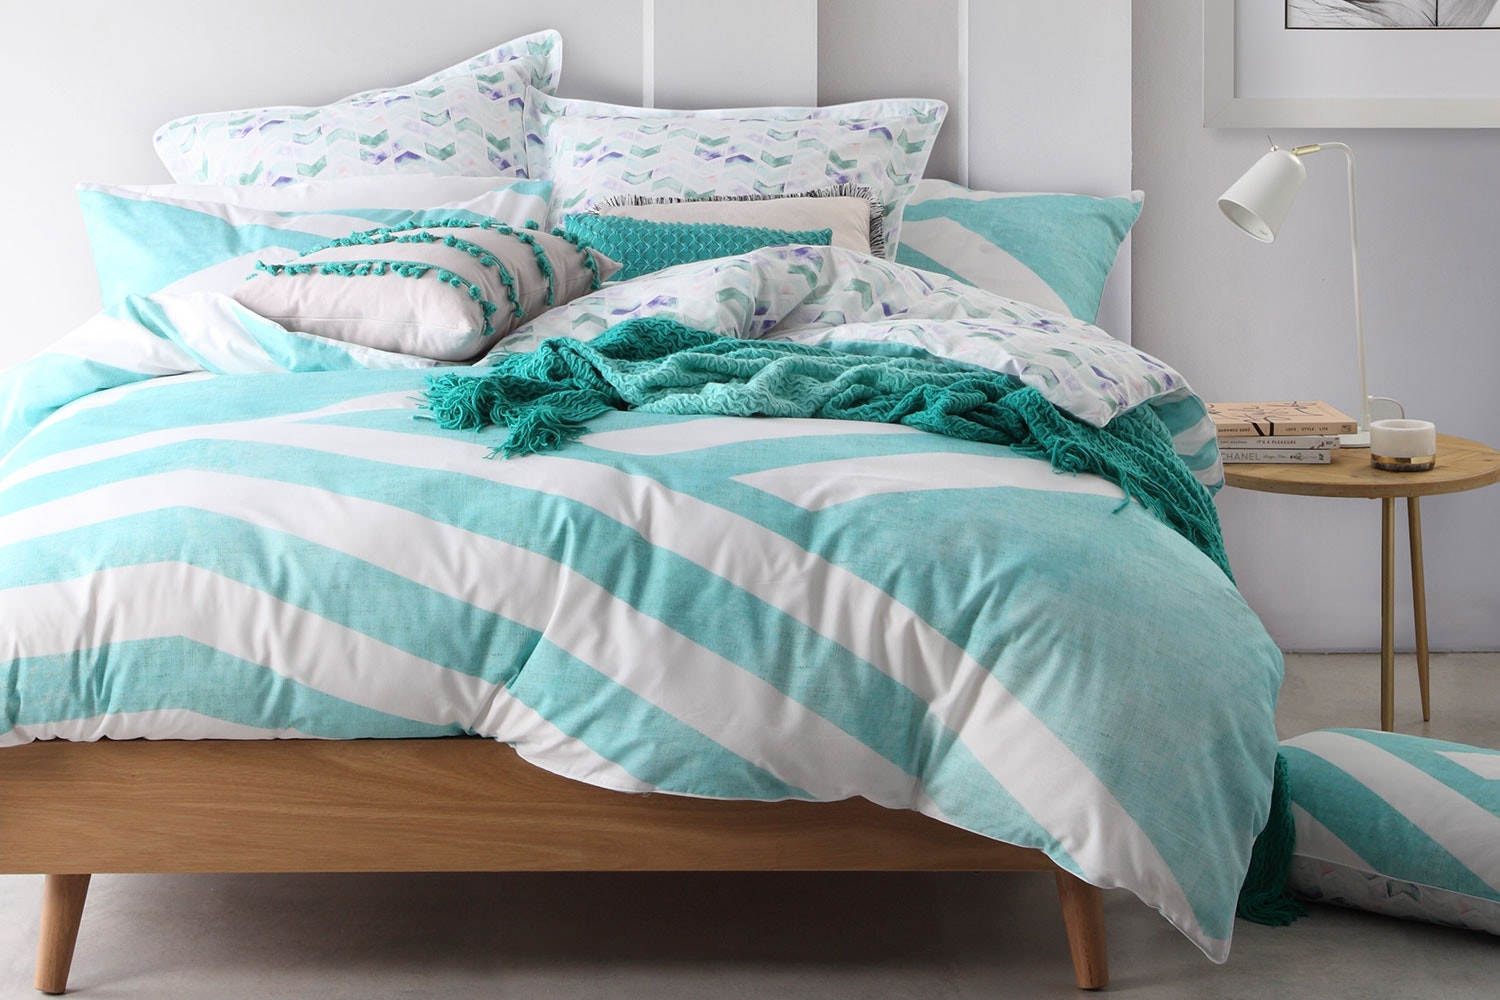 Calippo Teal Duvet Cover Set by Logan and Mason